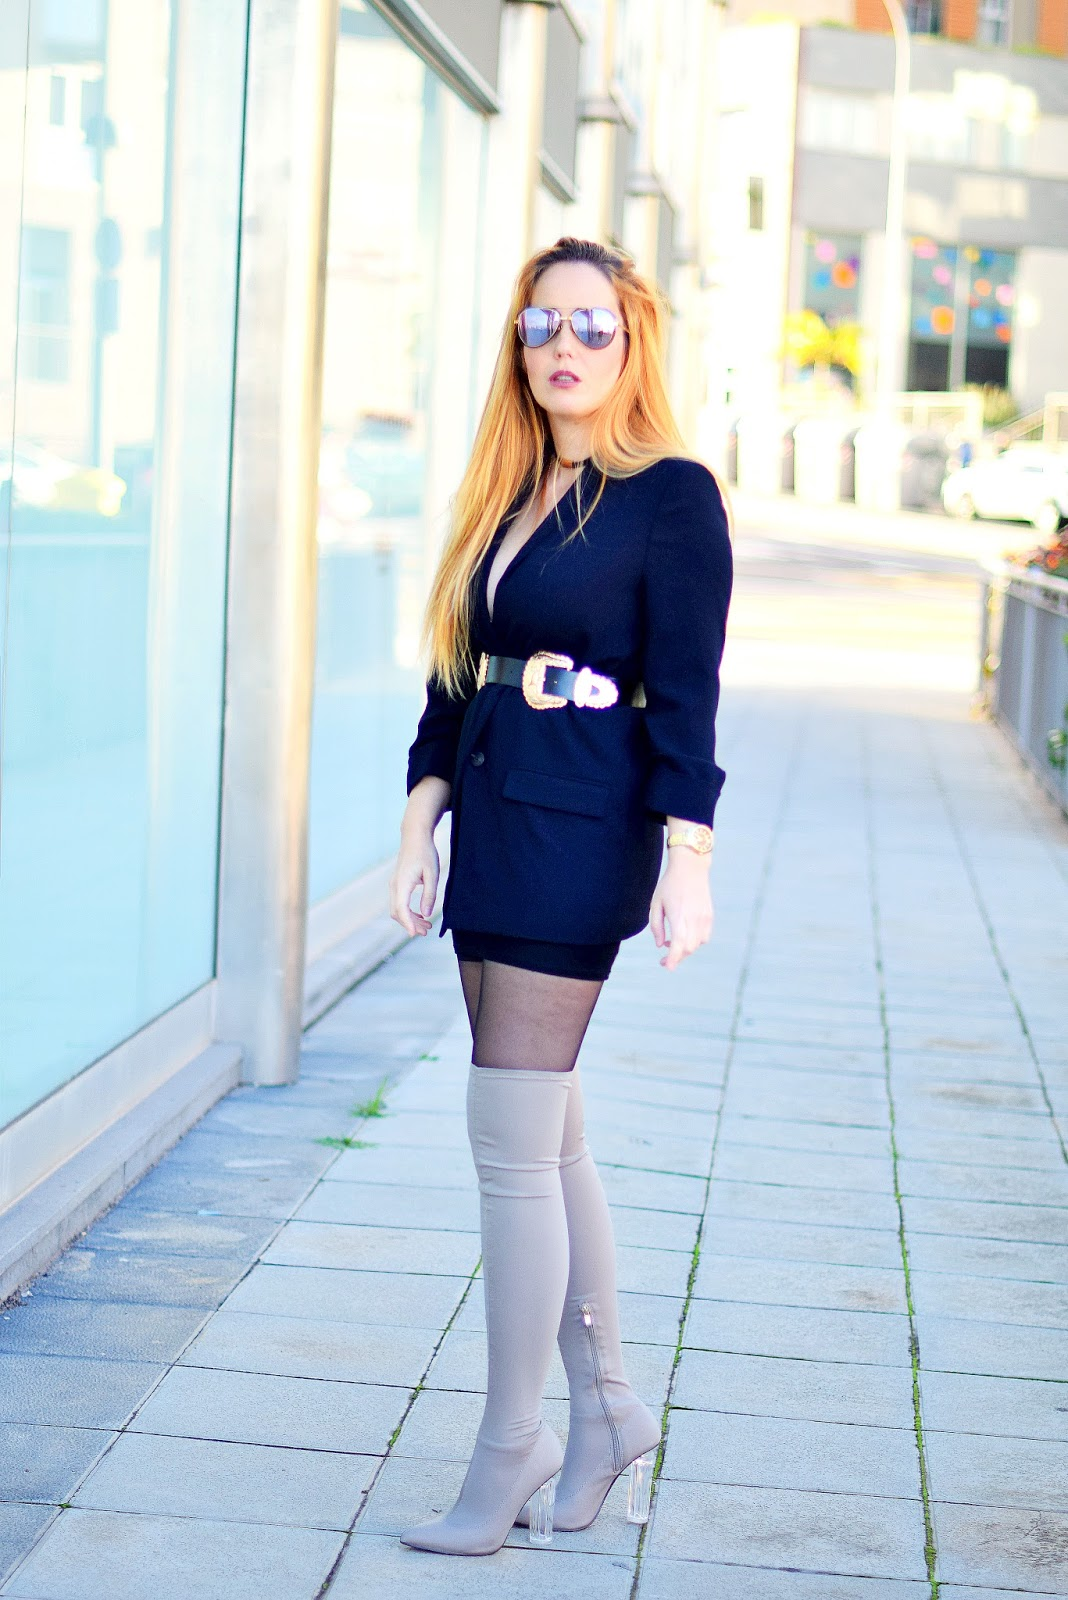 nery hdez, kardashian style, b-low de belt clone, opticalh, over the knee boots, carolina boix